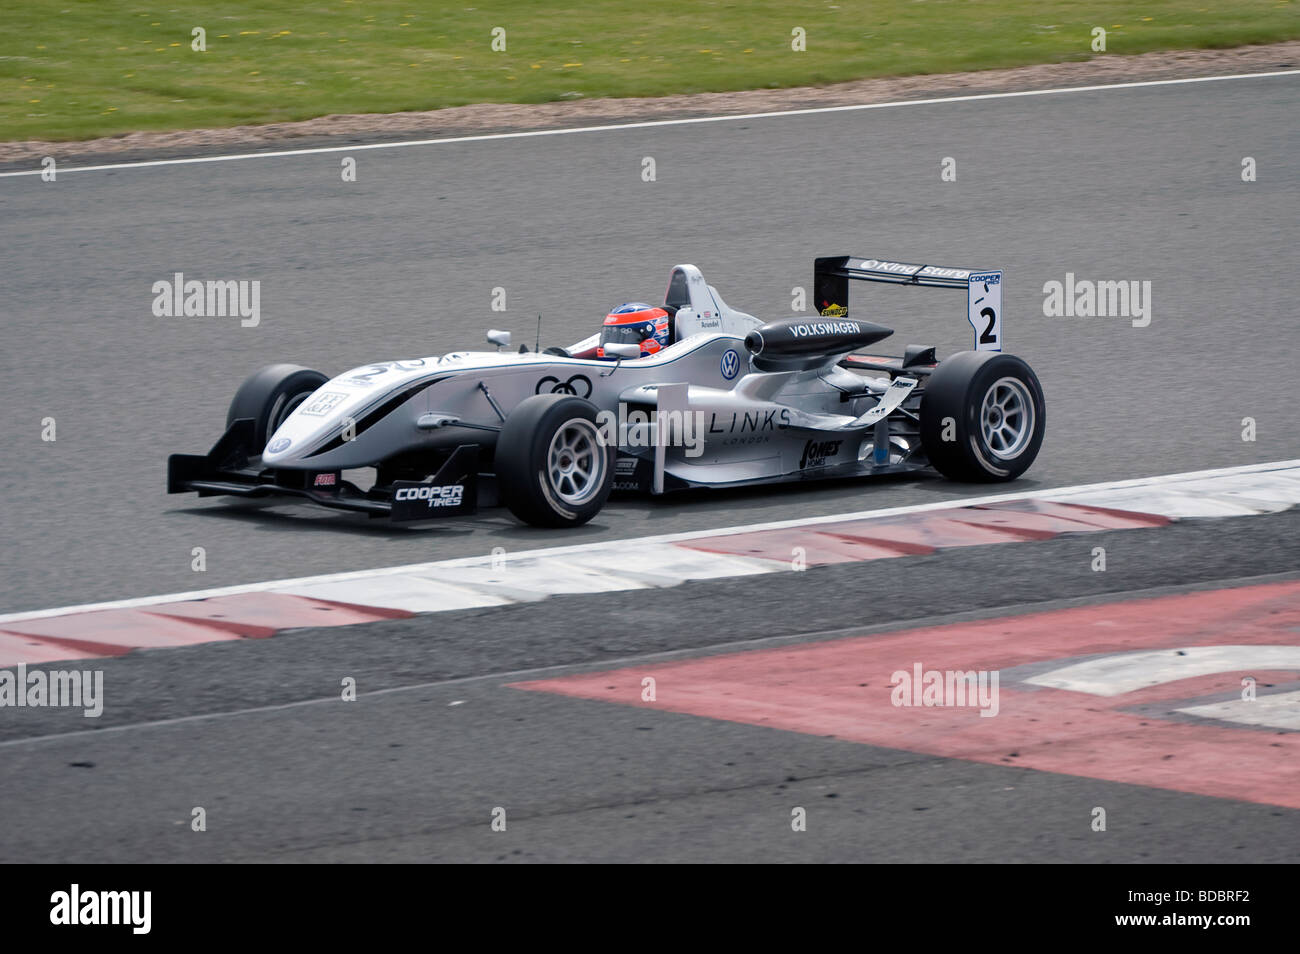 Henry Arundel in his Formula 3 Dallara Volkswagen at Silverstone - Stock Image